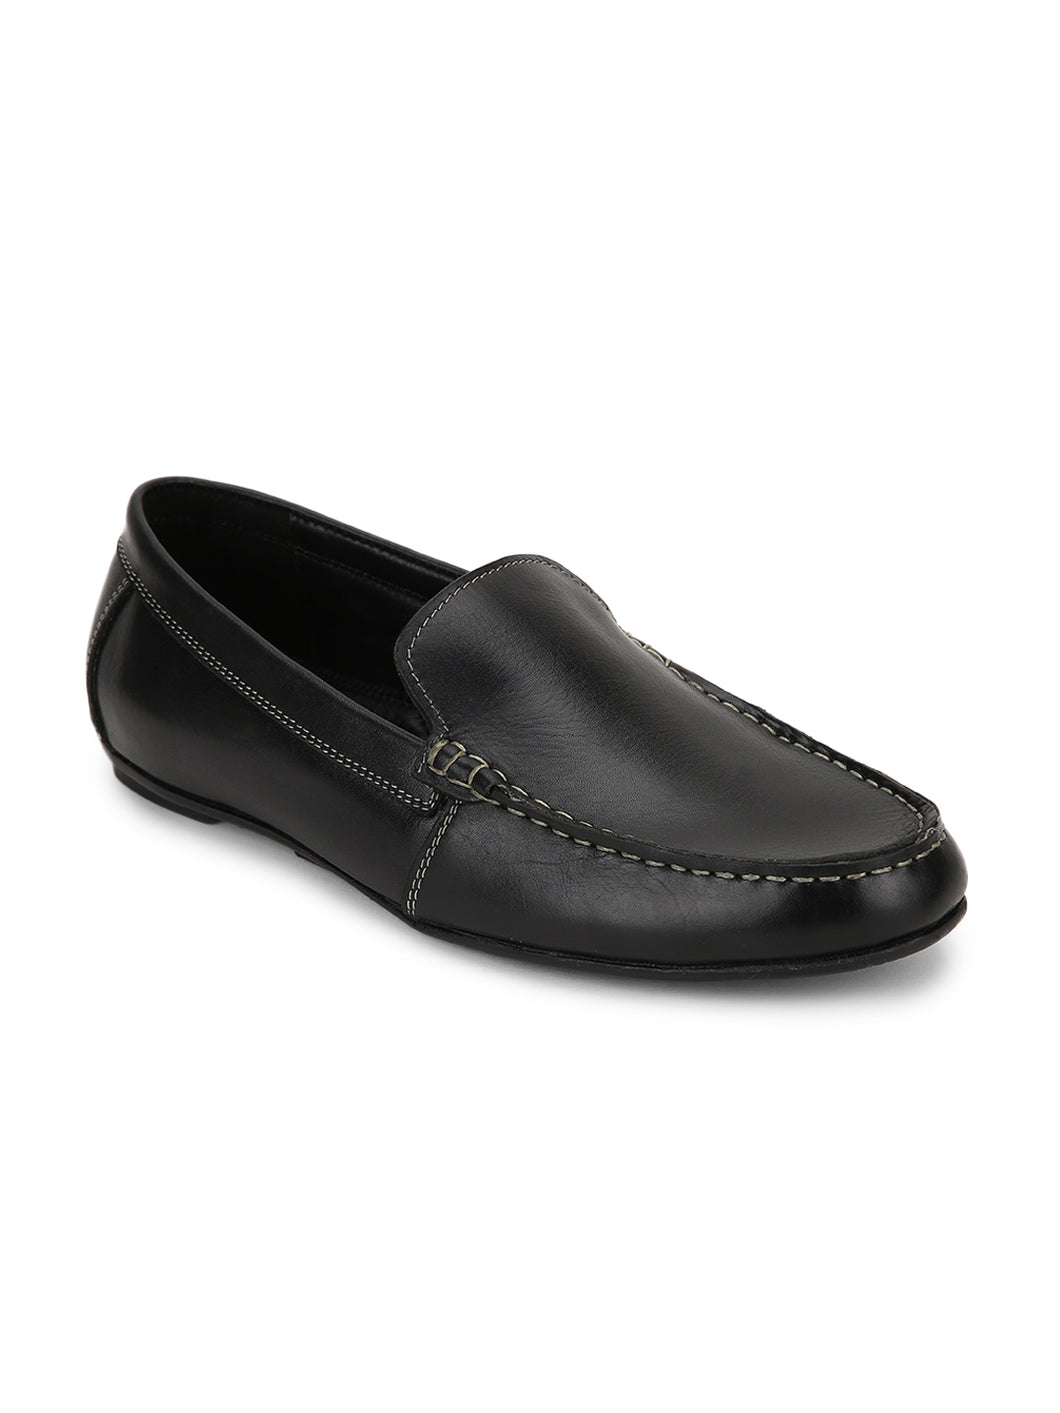 Teakwood Men Genuine Leather Slip-ons